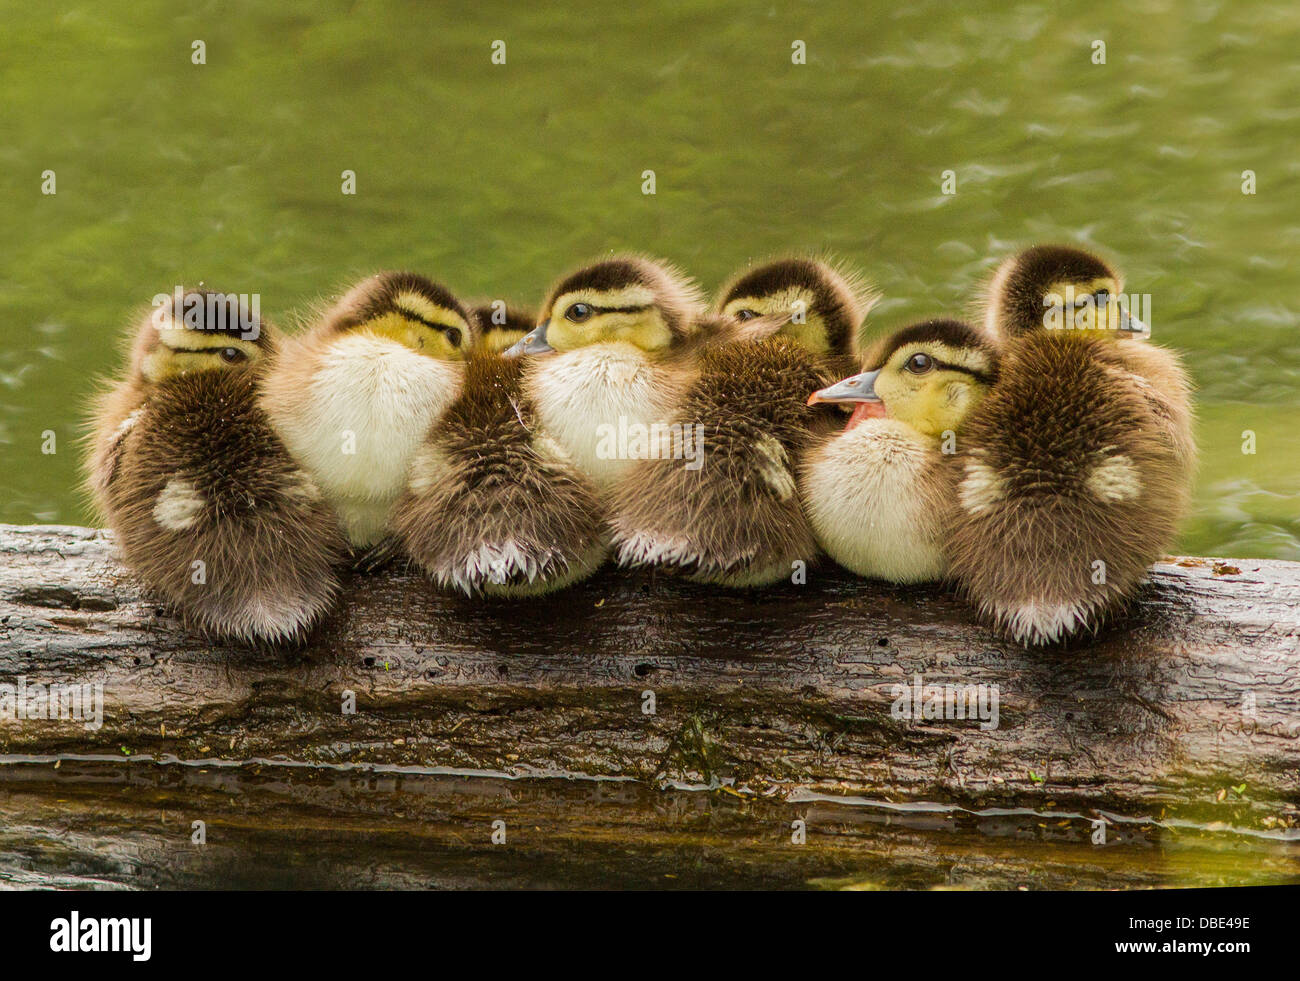 new style 324a9 09b7b Seven wood duck or Carolina duck ducklings in early spring ...